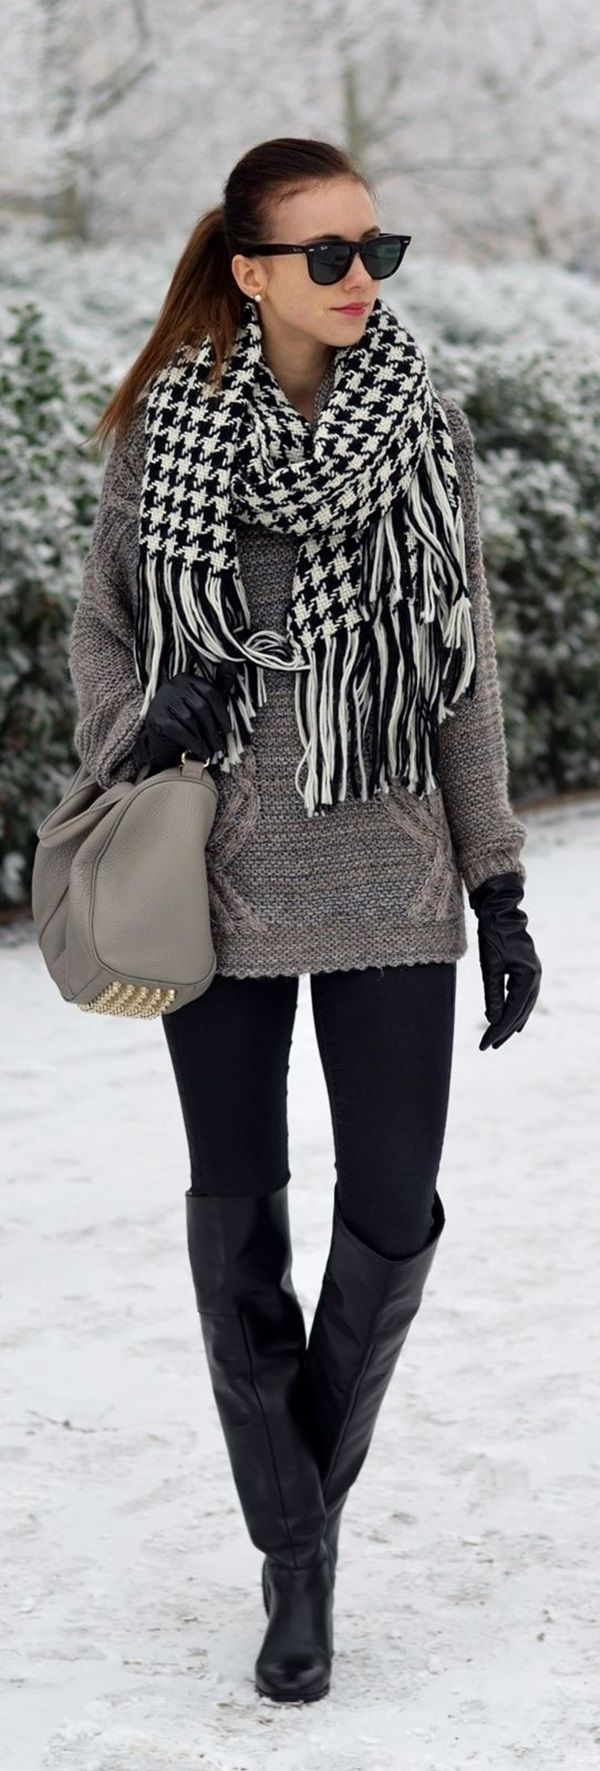 40 Stylish Fall Outfits For Women | http://fashion.ekstrax.com ...